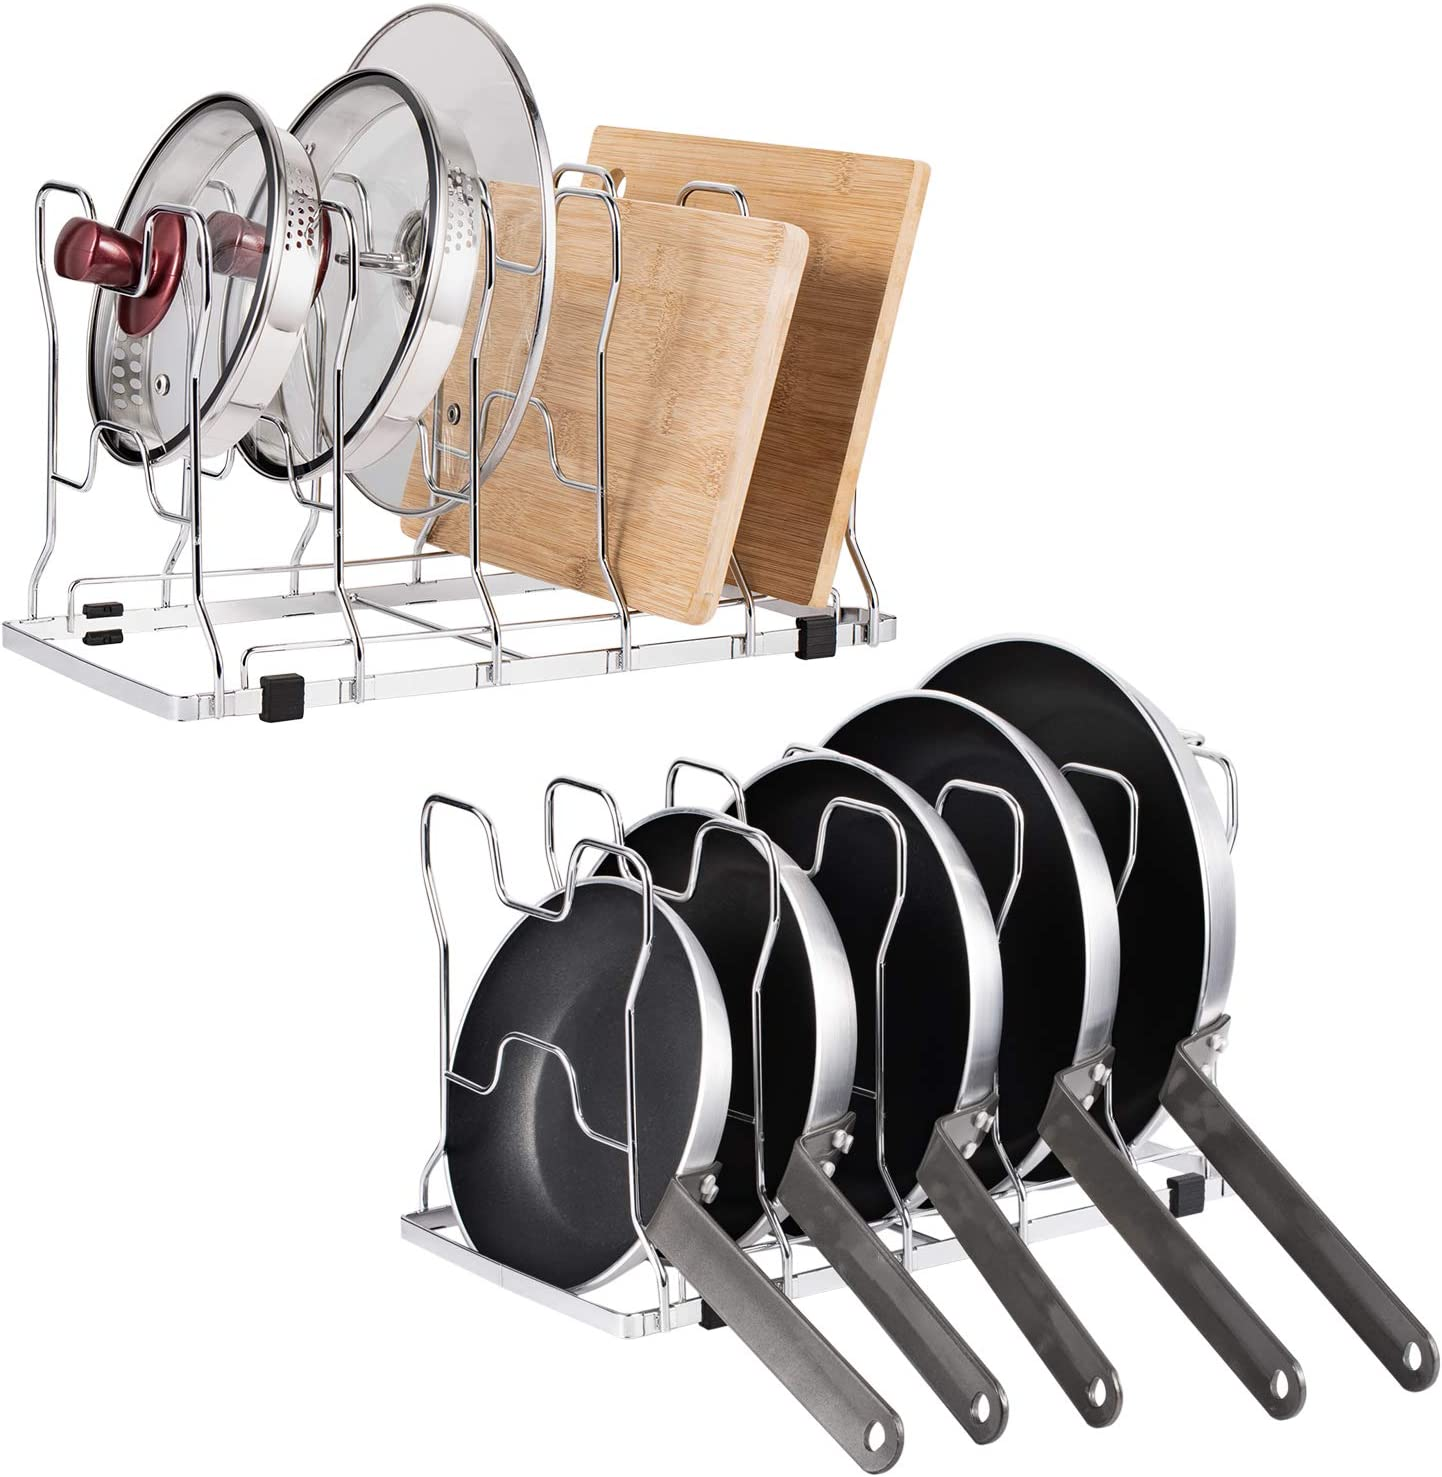 NEX 2 Pack Pan and Pot Lid Organizer Rack Holder for Kitchen Cabinet Pantry, Chrome